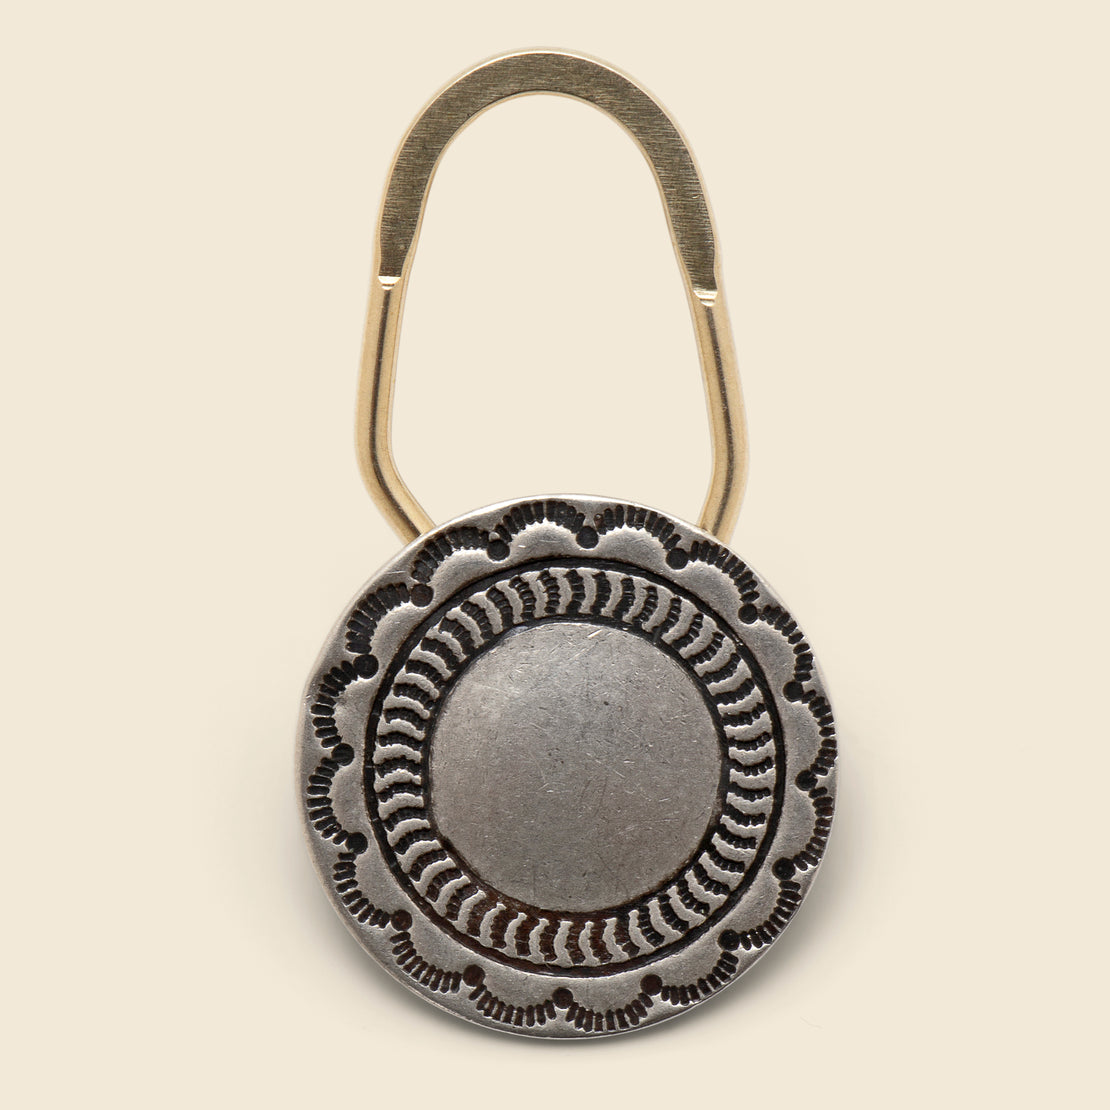 Yuketen Concho Key Chain Round Smooth Center - Nickel Silver